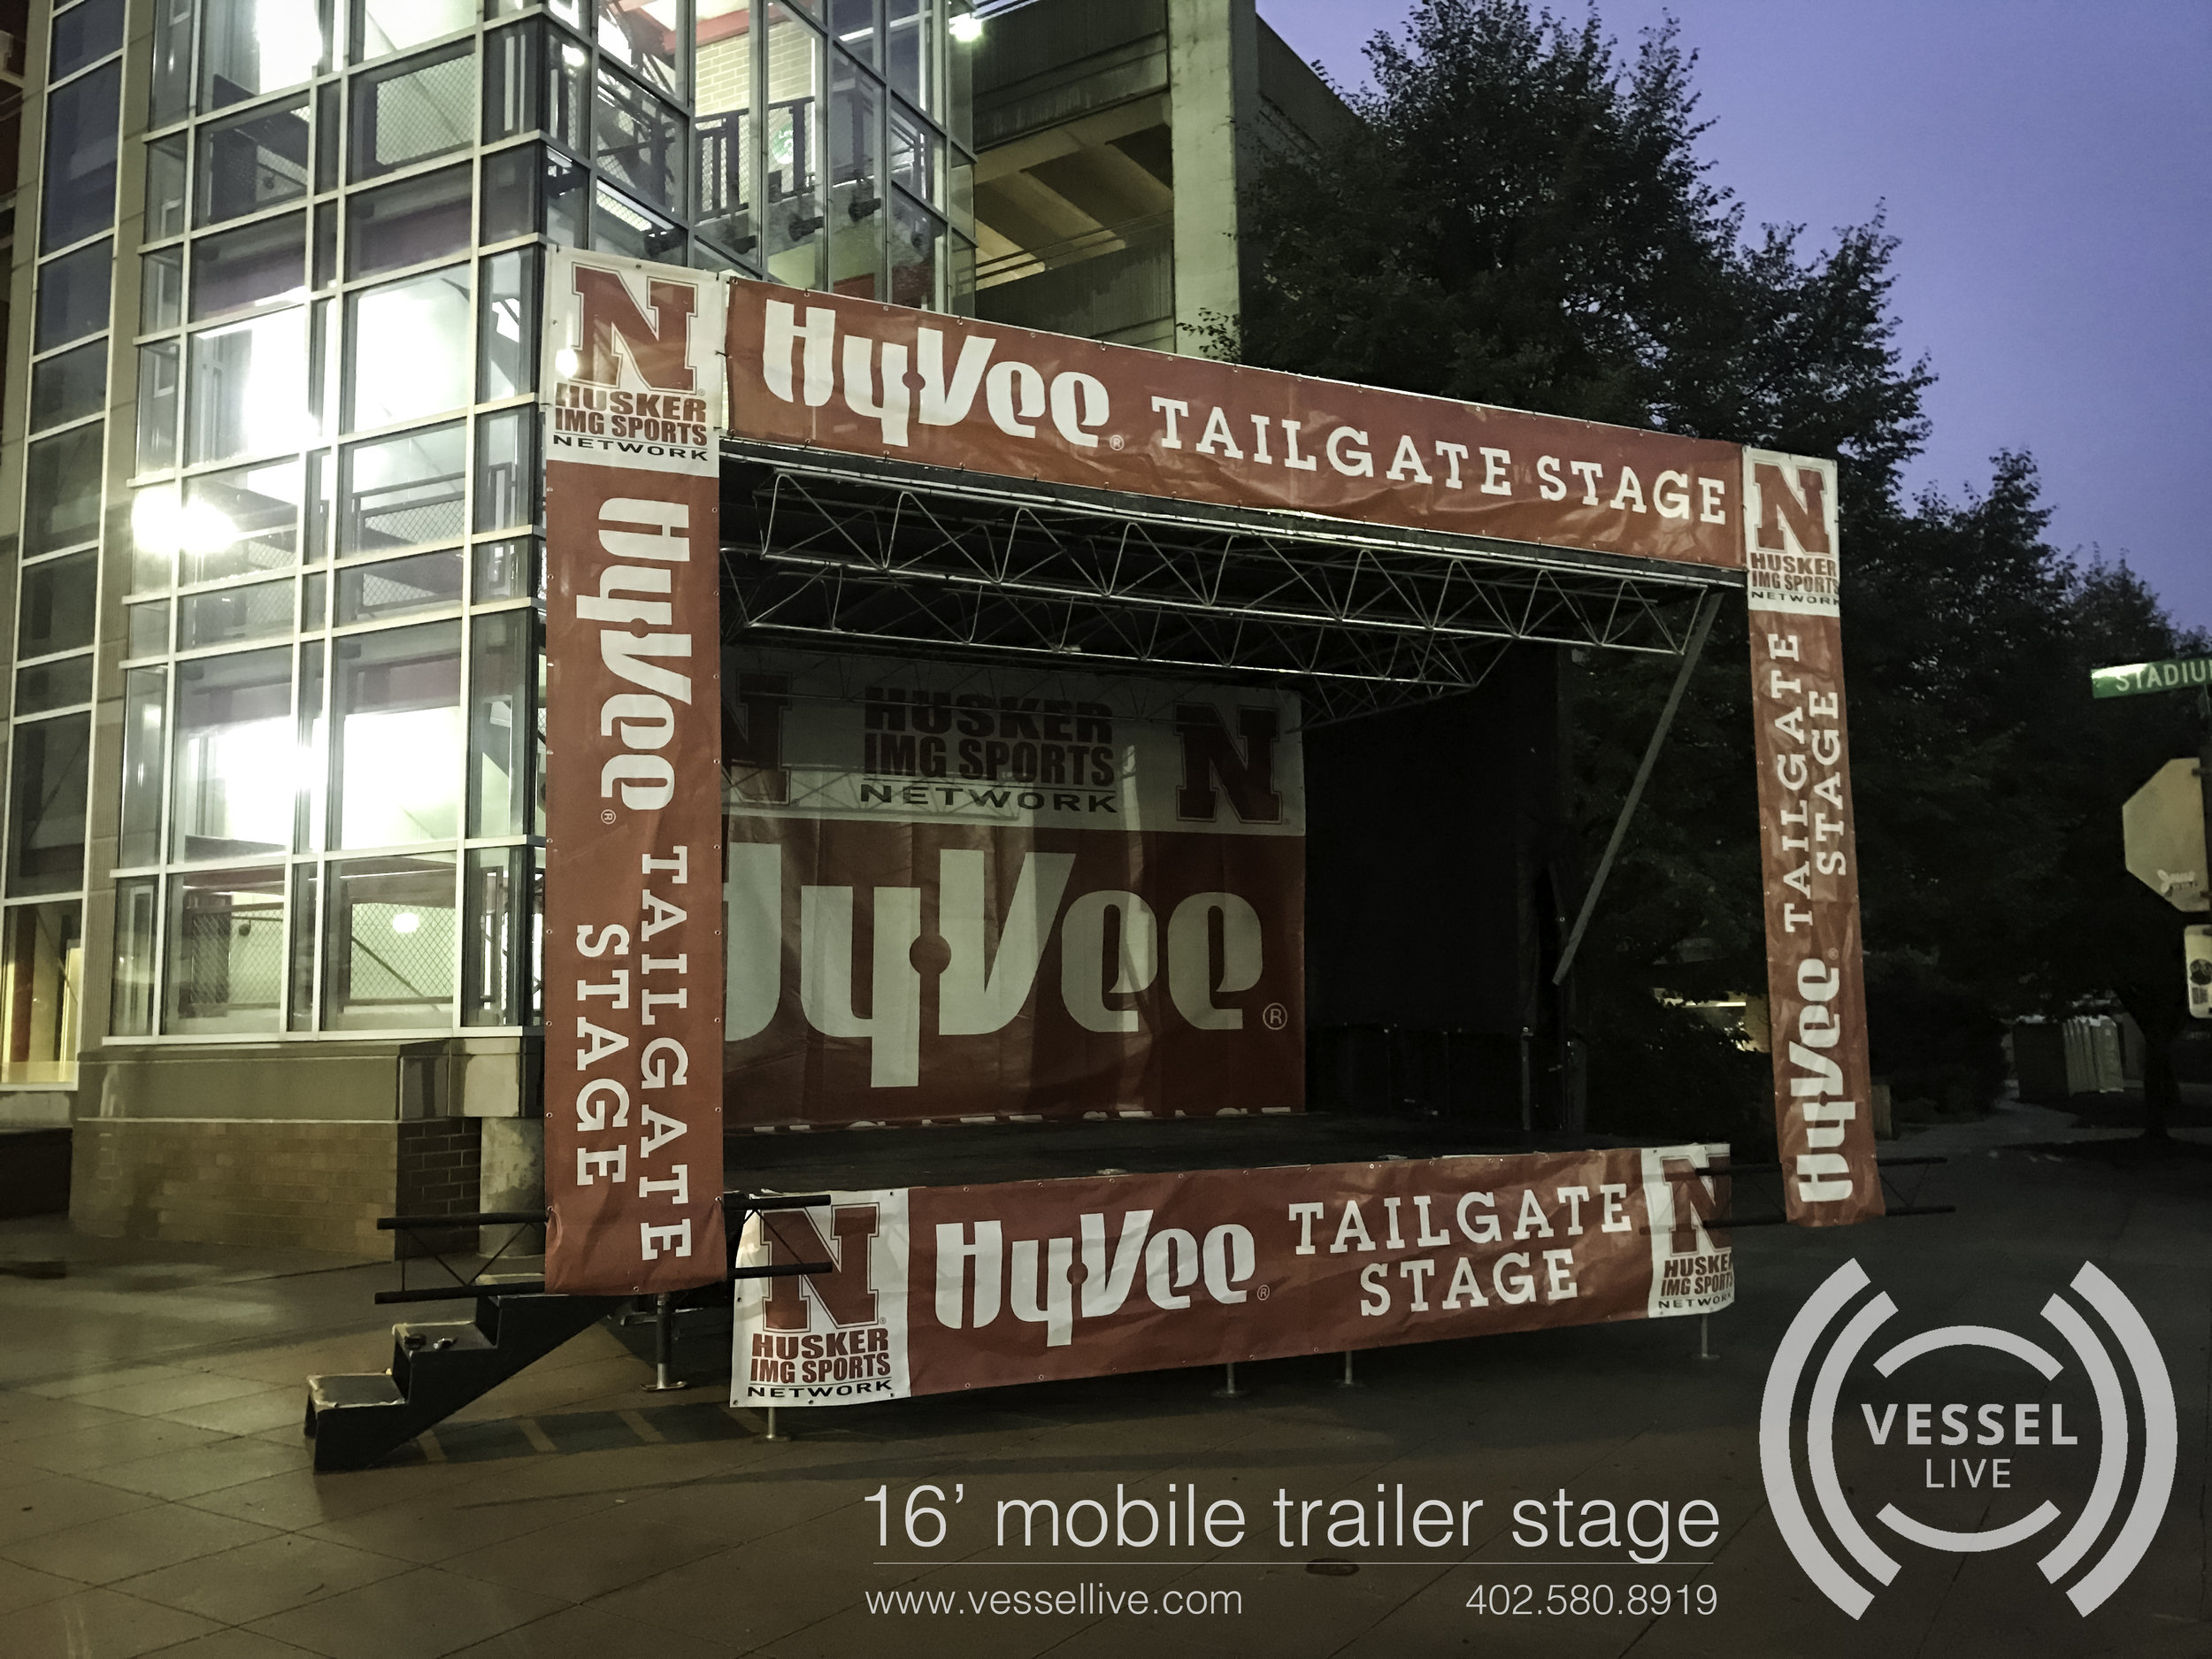 16' mobile trailer stage